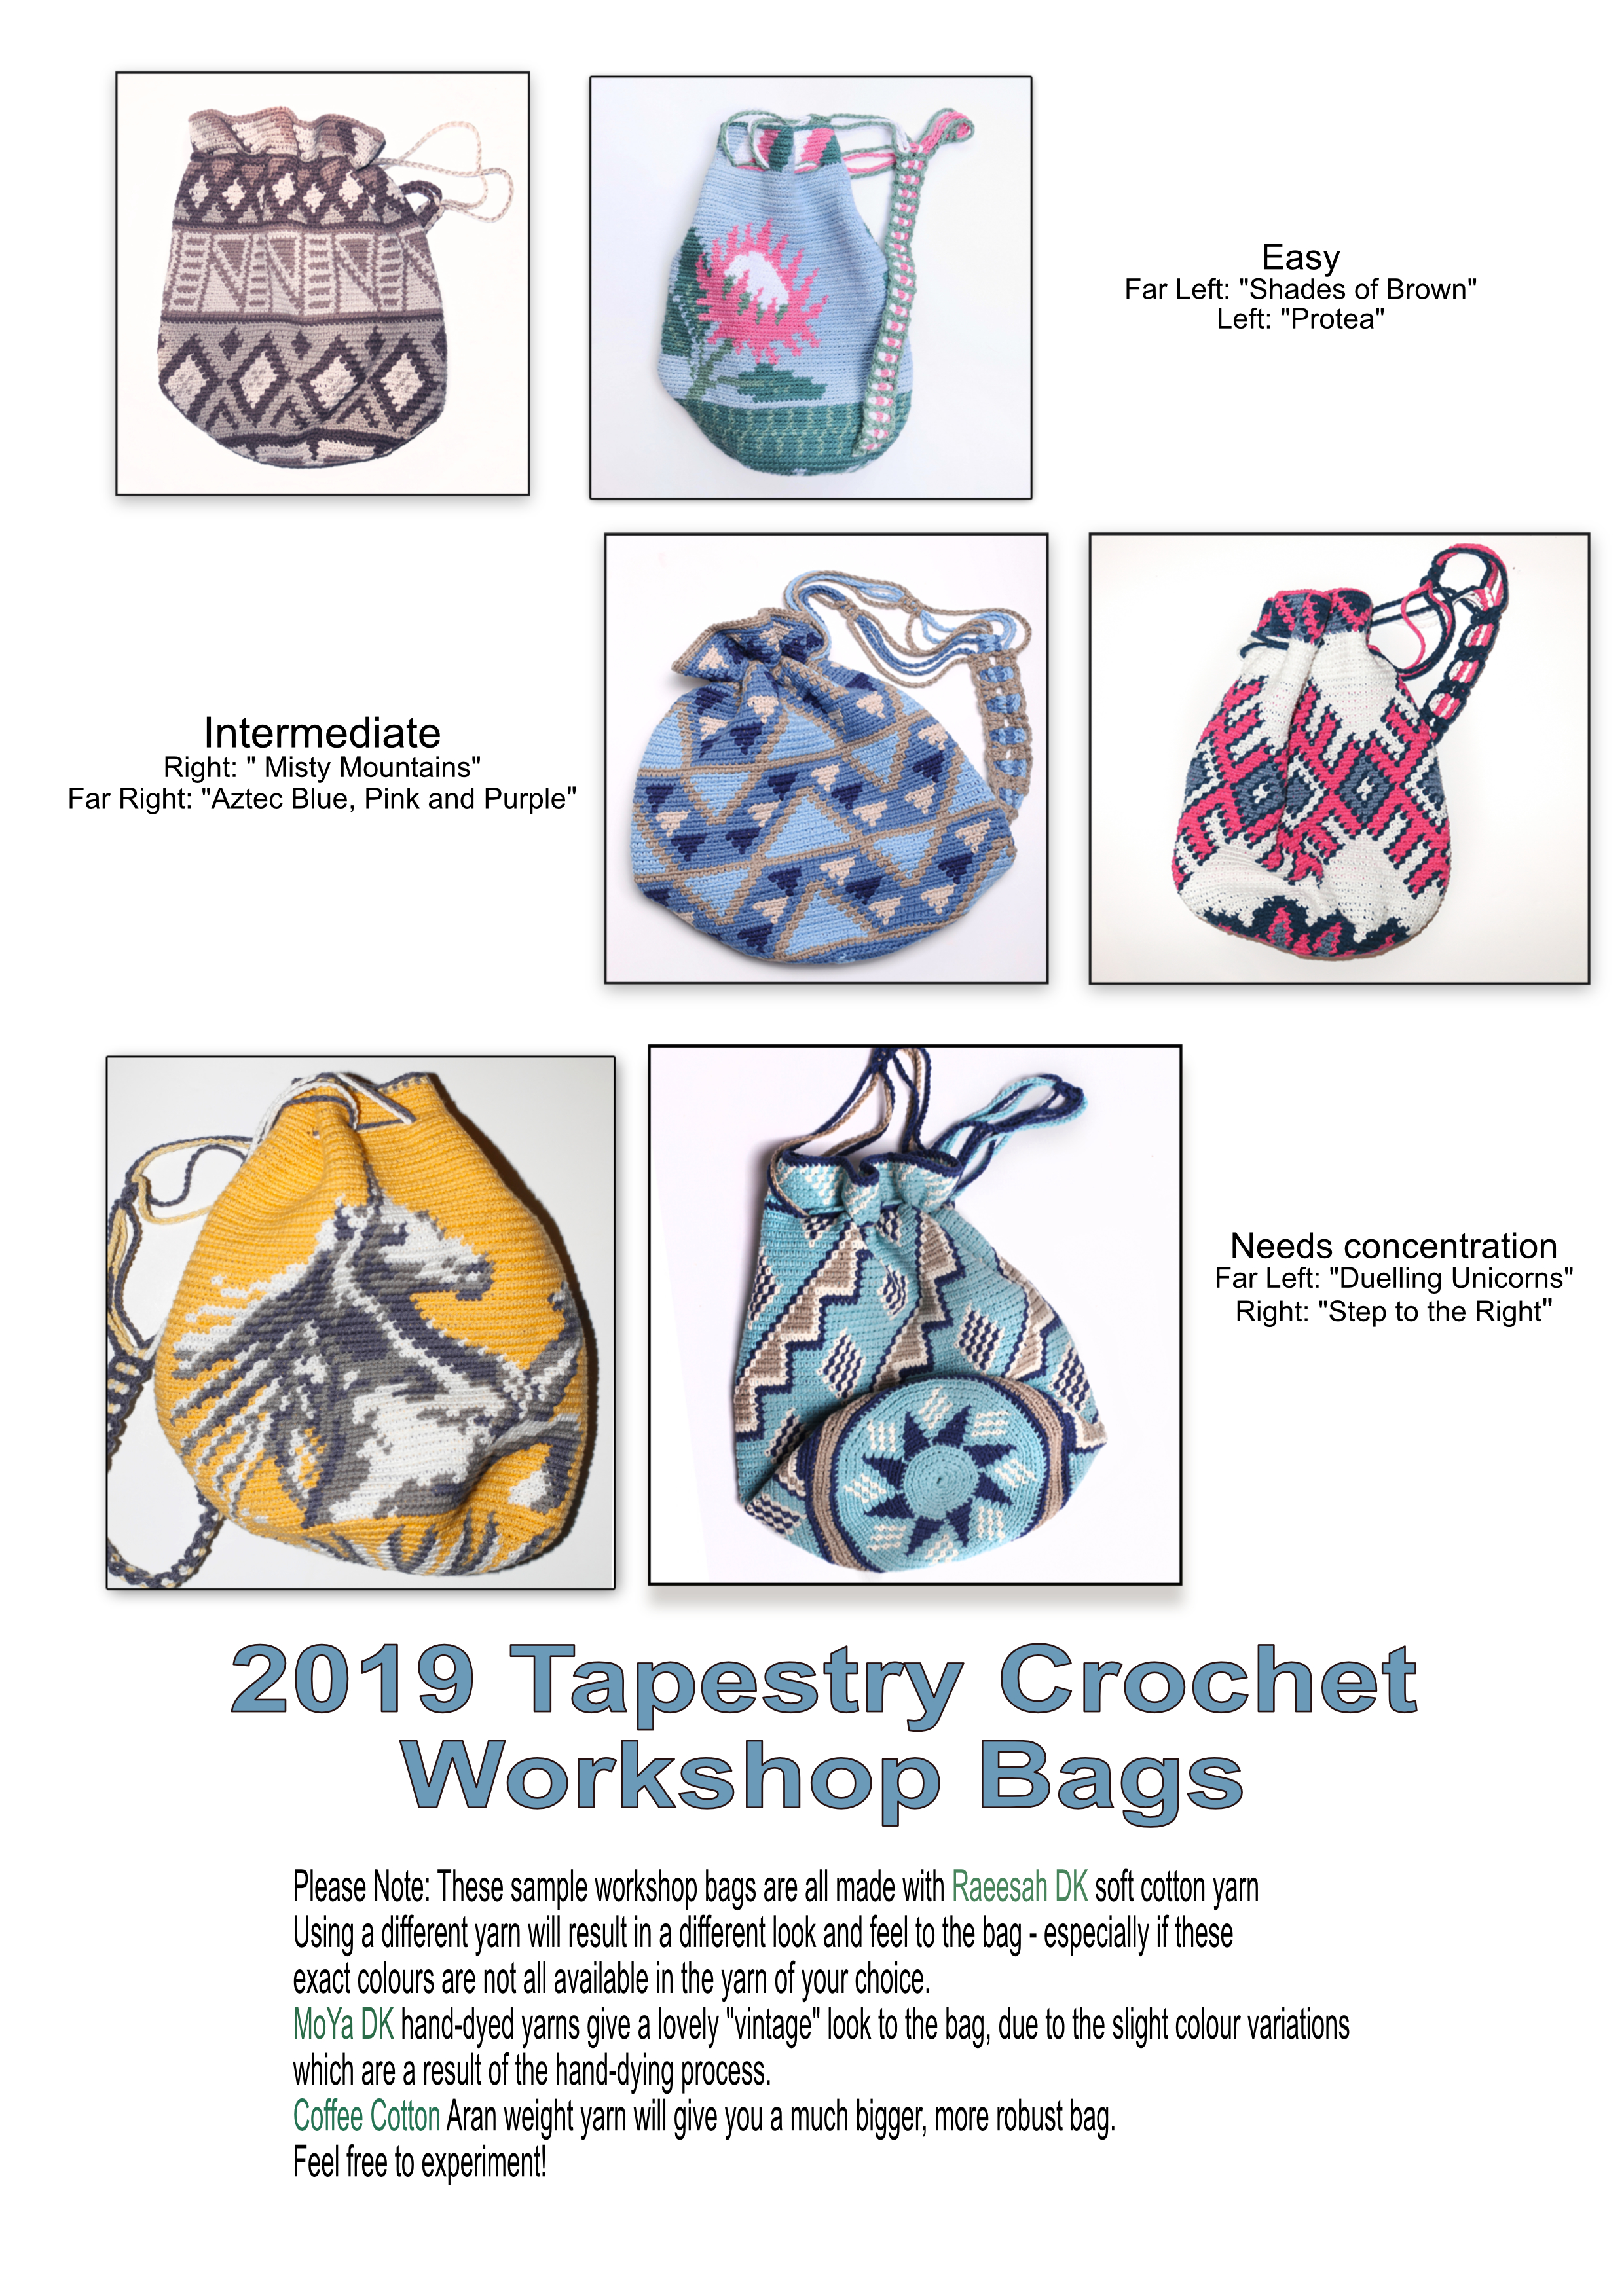 2019 Tapestry Crochet Workshop bags portrait